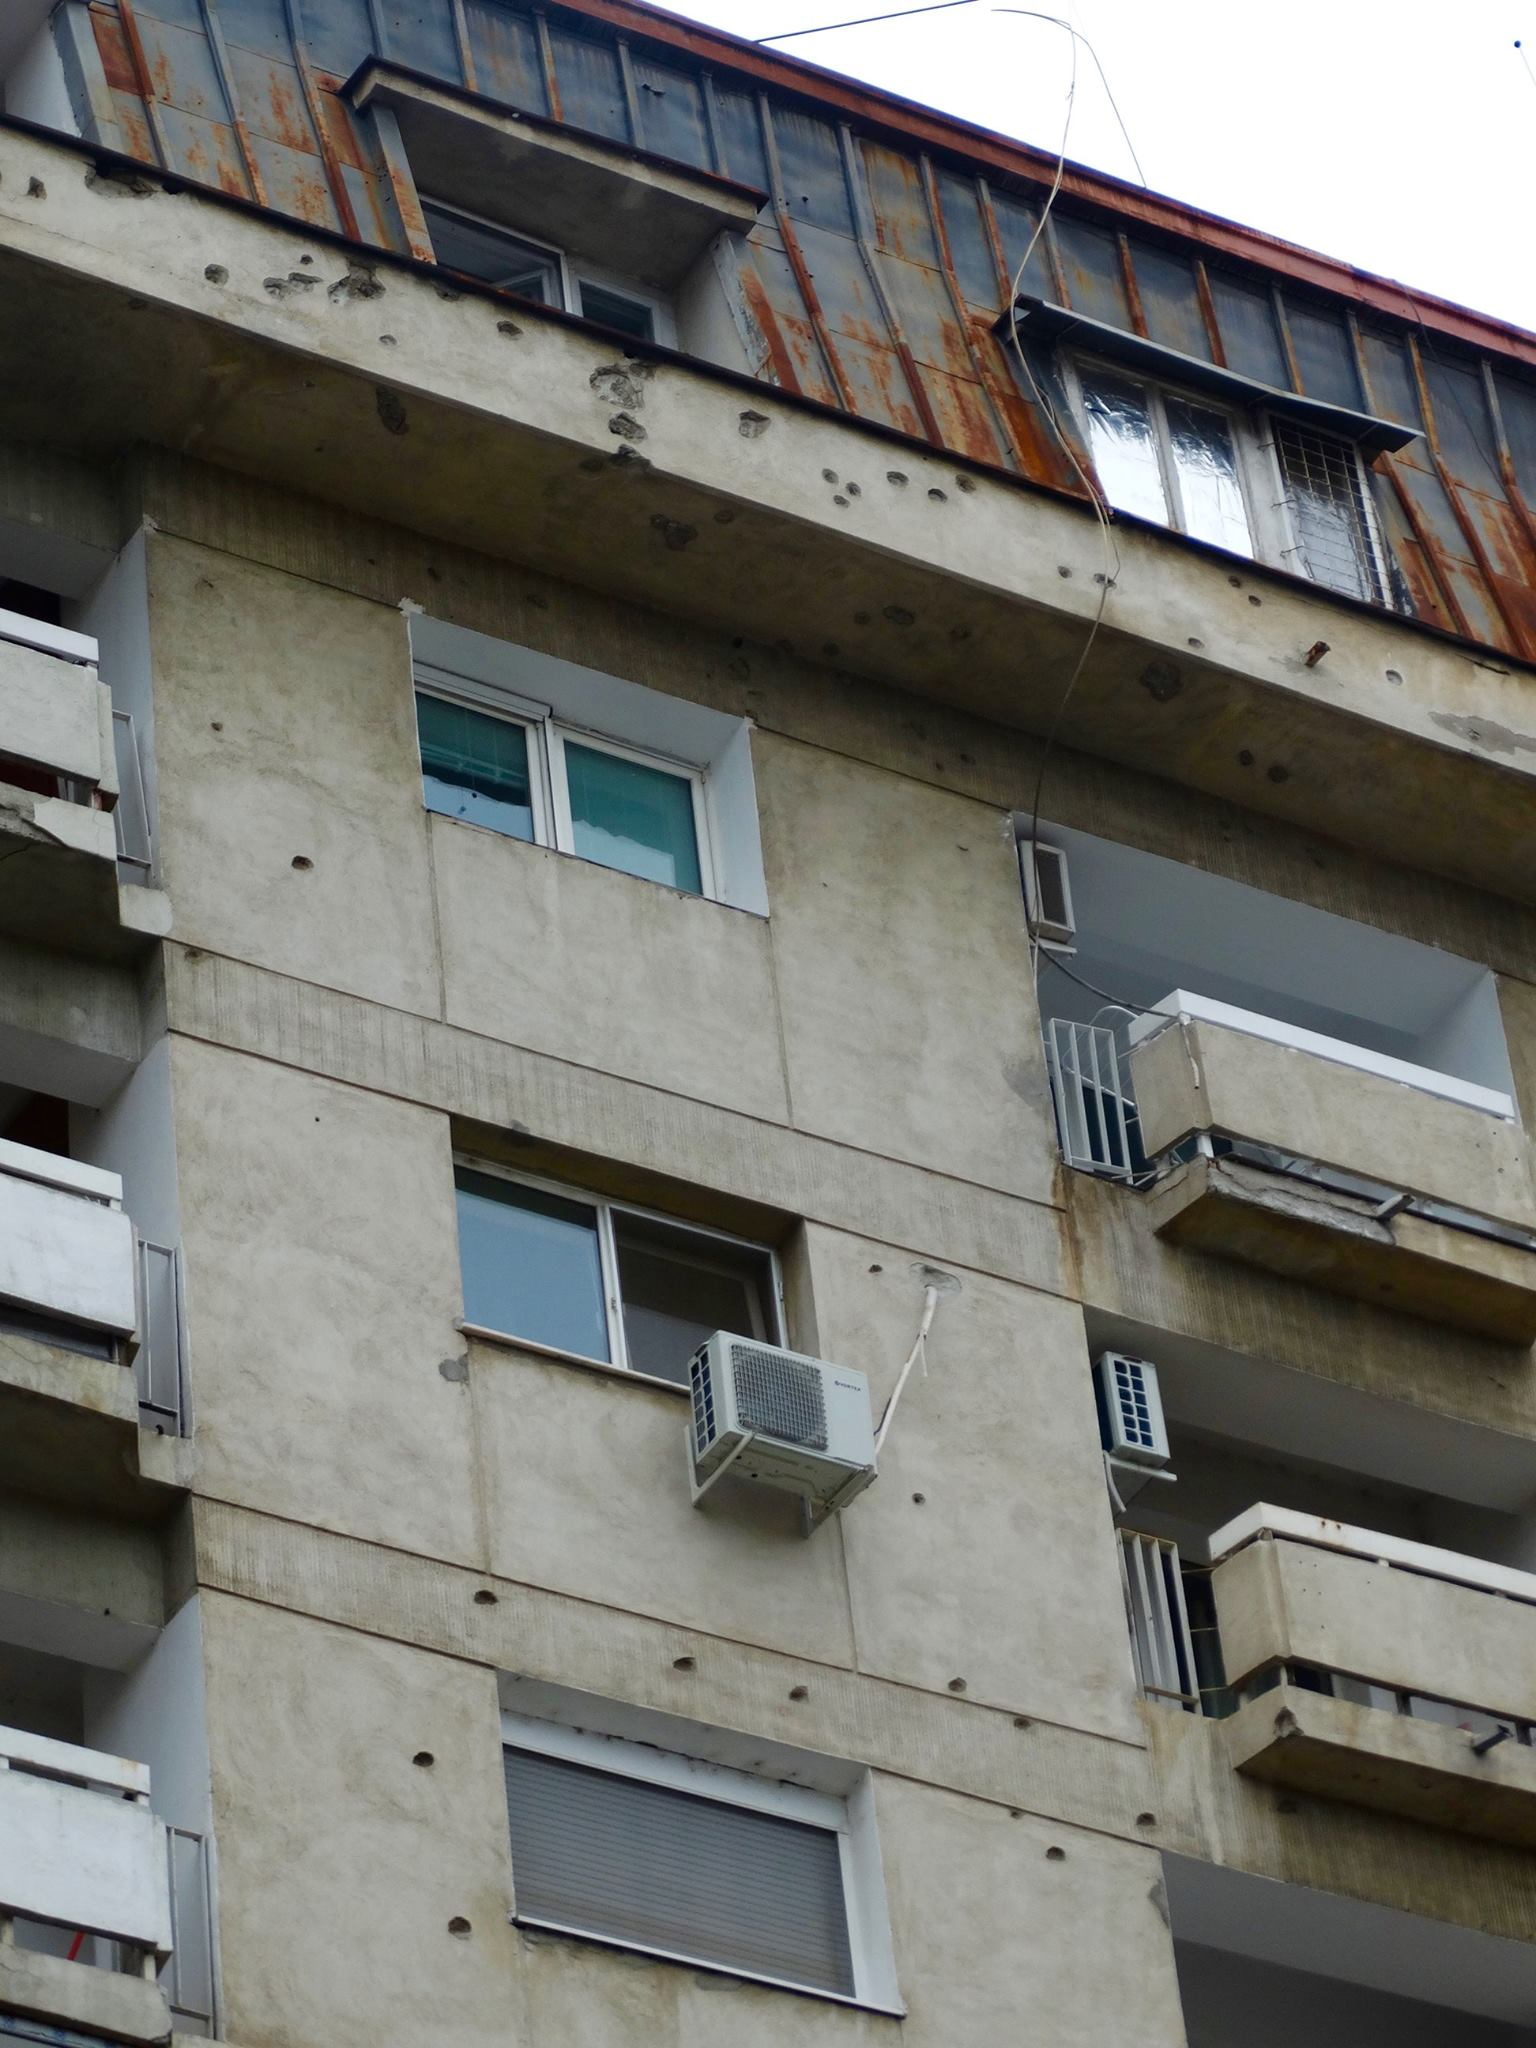 Bullet holes from the revolt still remain on many Bucharest buildings.